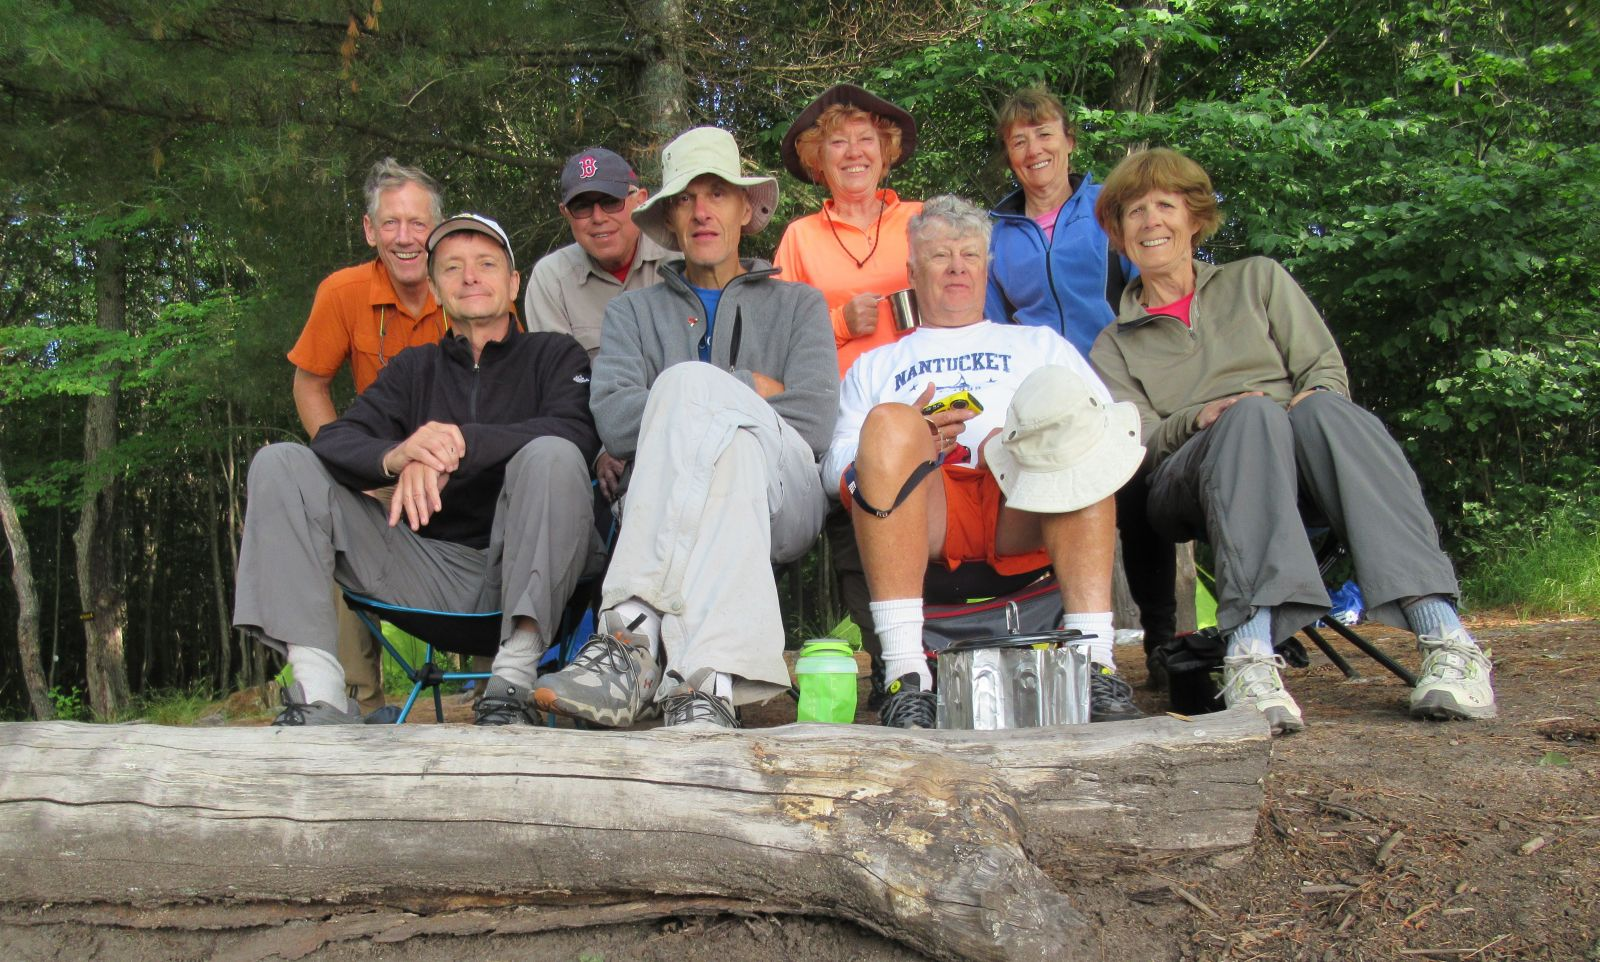 Low's Lake campers, July 2018, included (back row, left to right): John, Gerry, Peggy, Lisa. Front row, Jim, Dave, Bill, and Alison. We are all hooked on wilderness camping!